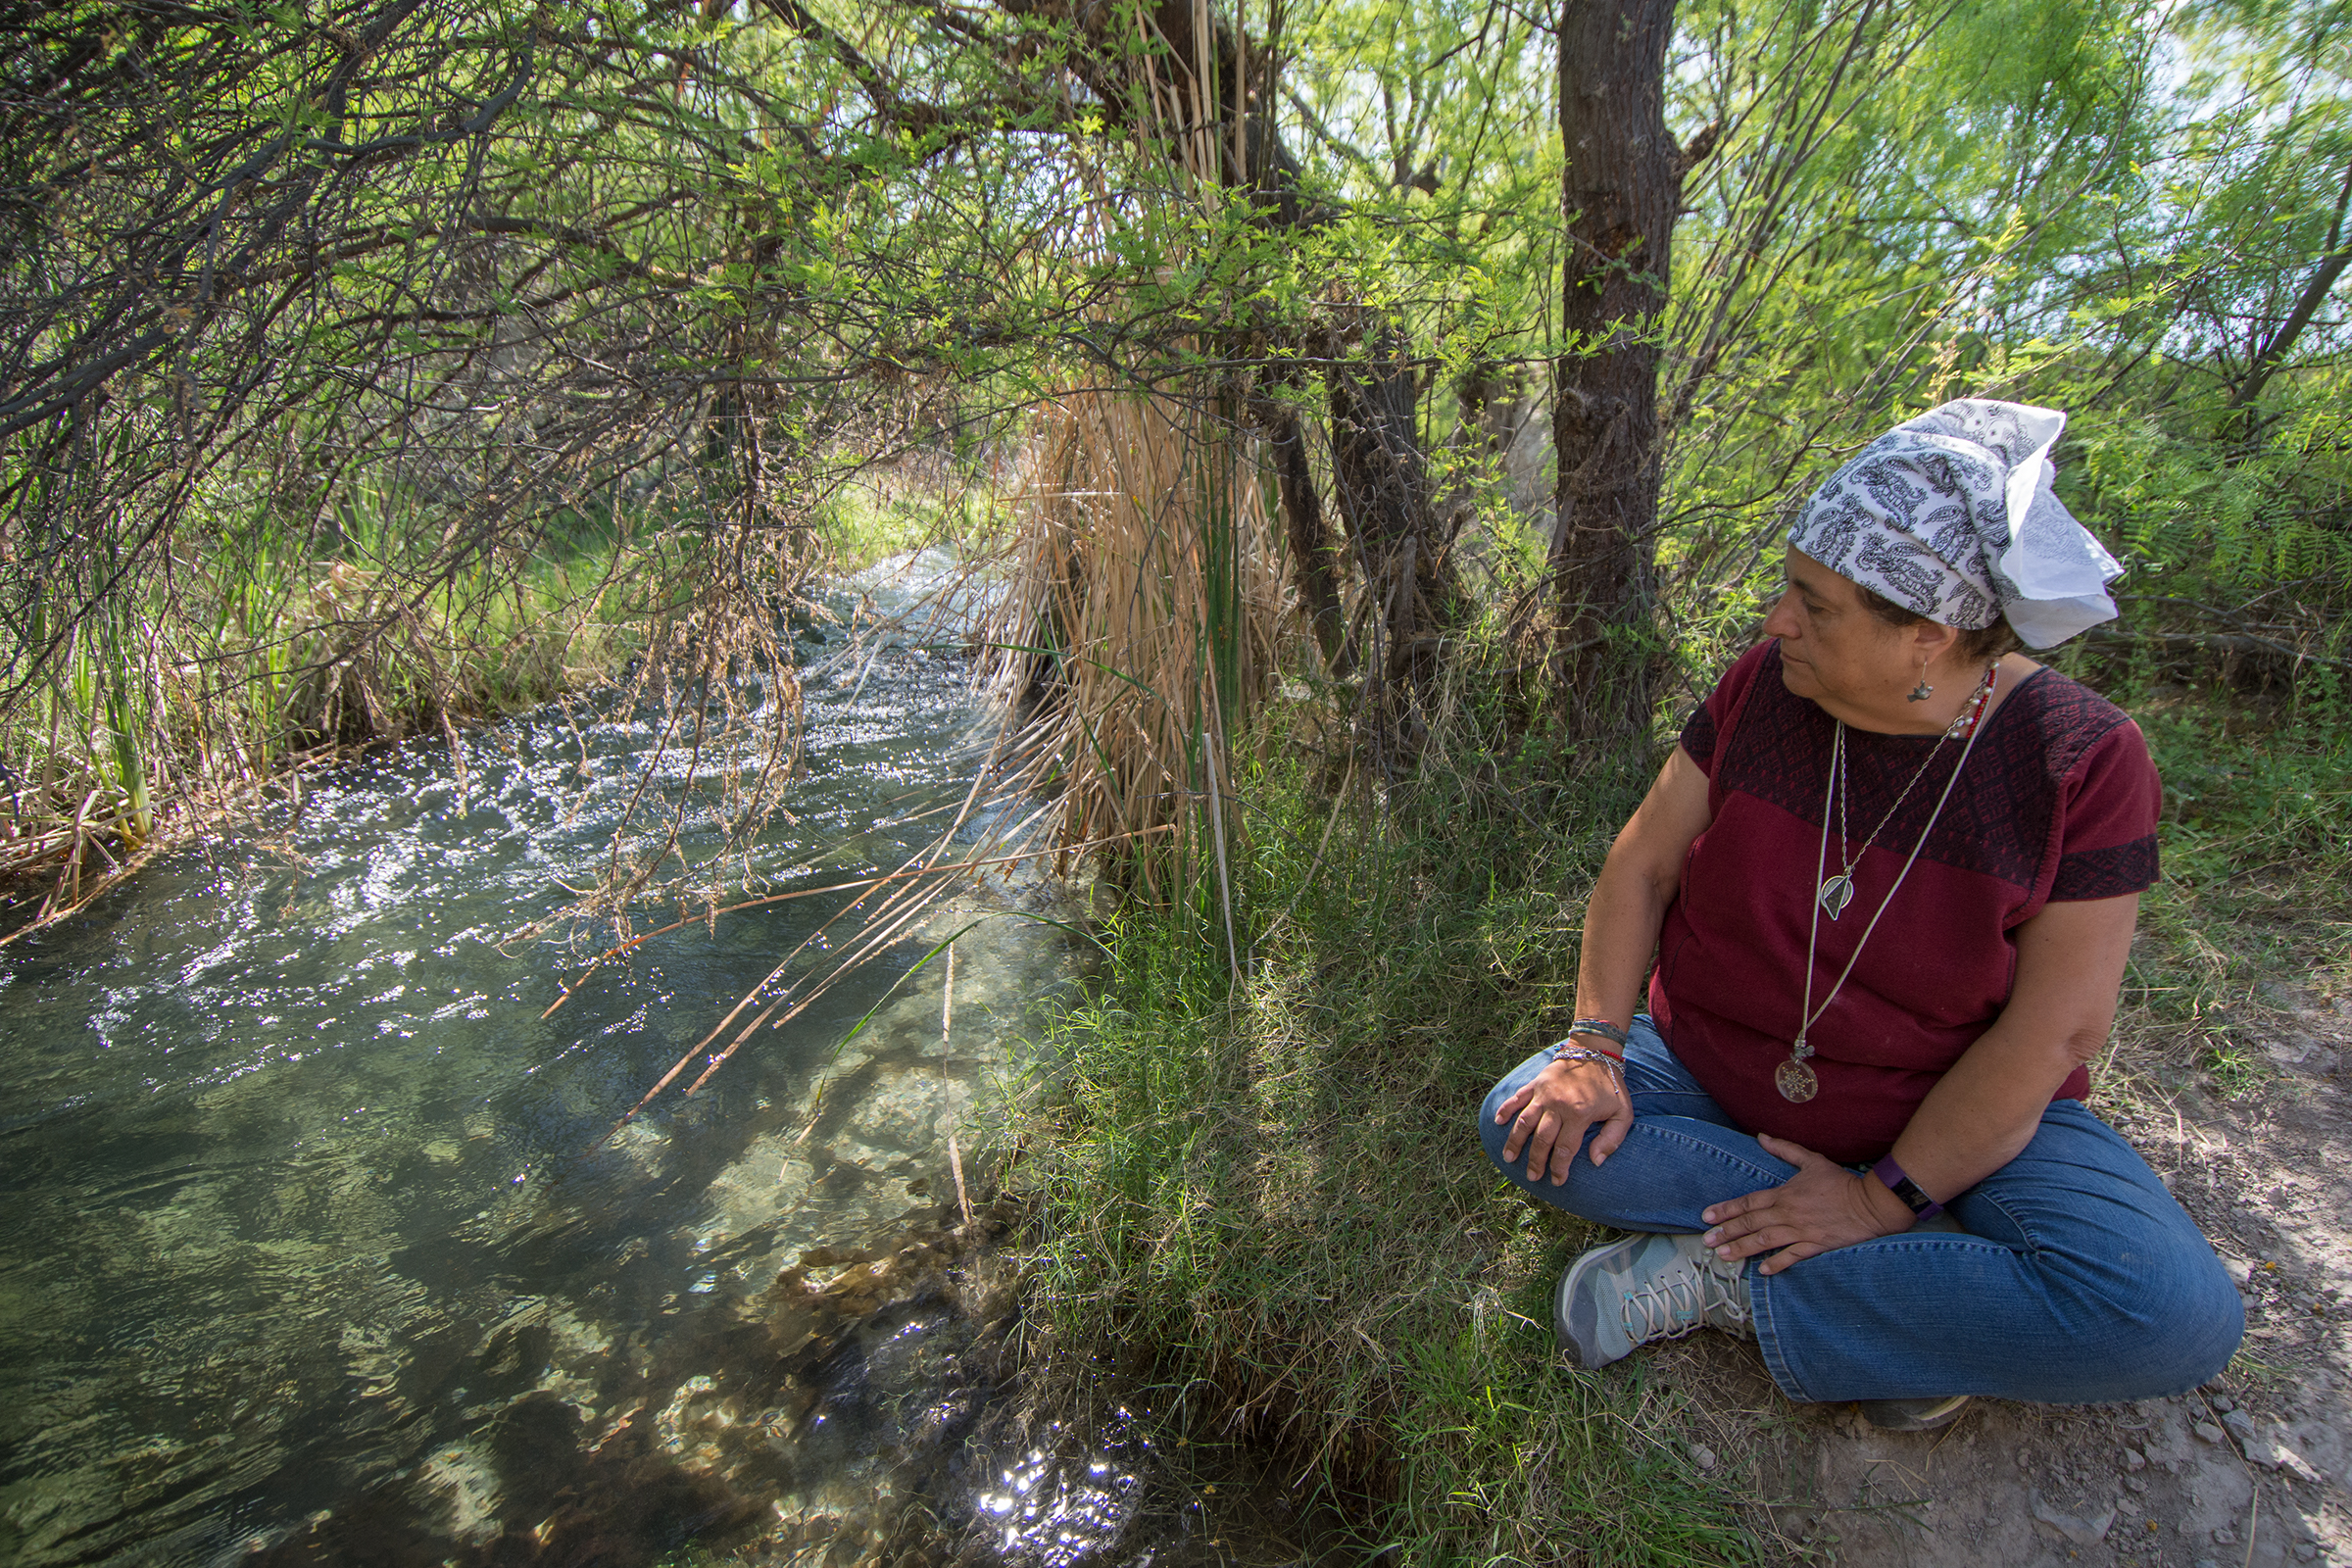 Valeria Souza gazes woefully at the Saca Salada irrigation canal that has been pulling water out of the basin since it was built in the early 1970s. Thanks to Souza's and other activists' efforts, the canal was recently closed.